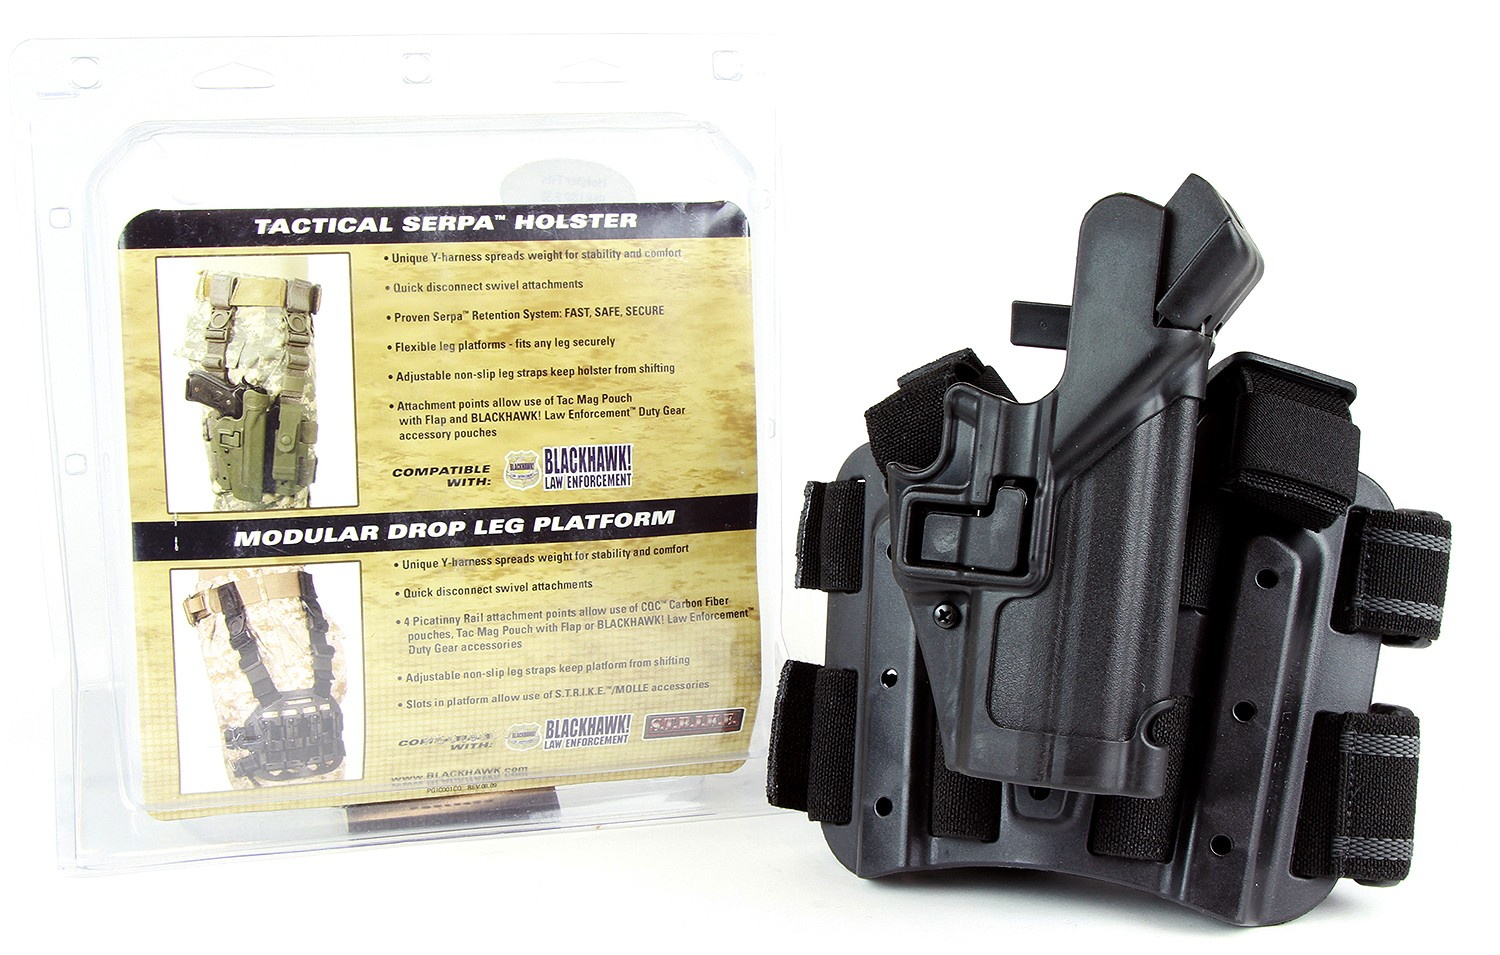 Blackhawk Tactical Serpa Level 3 Holster DEMO-B